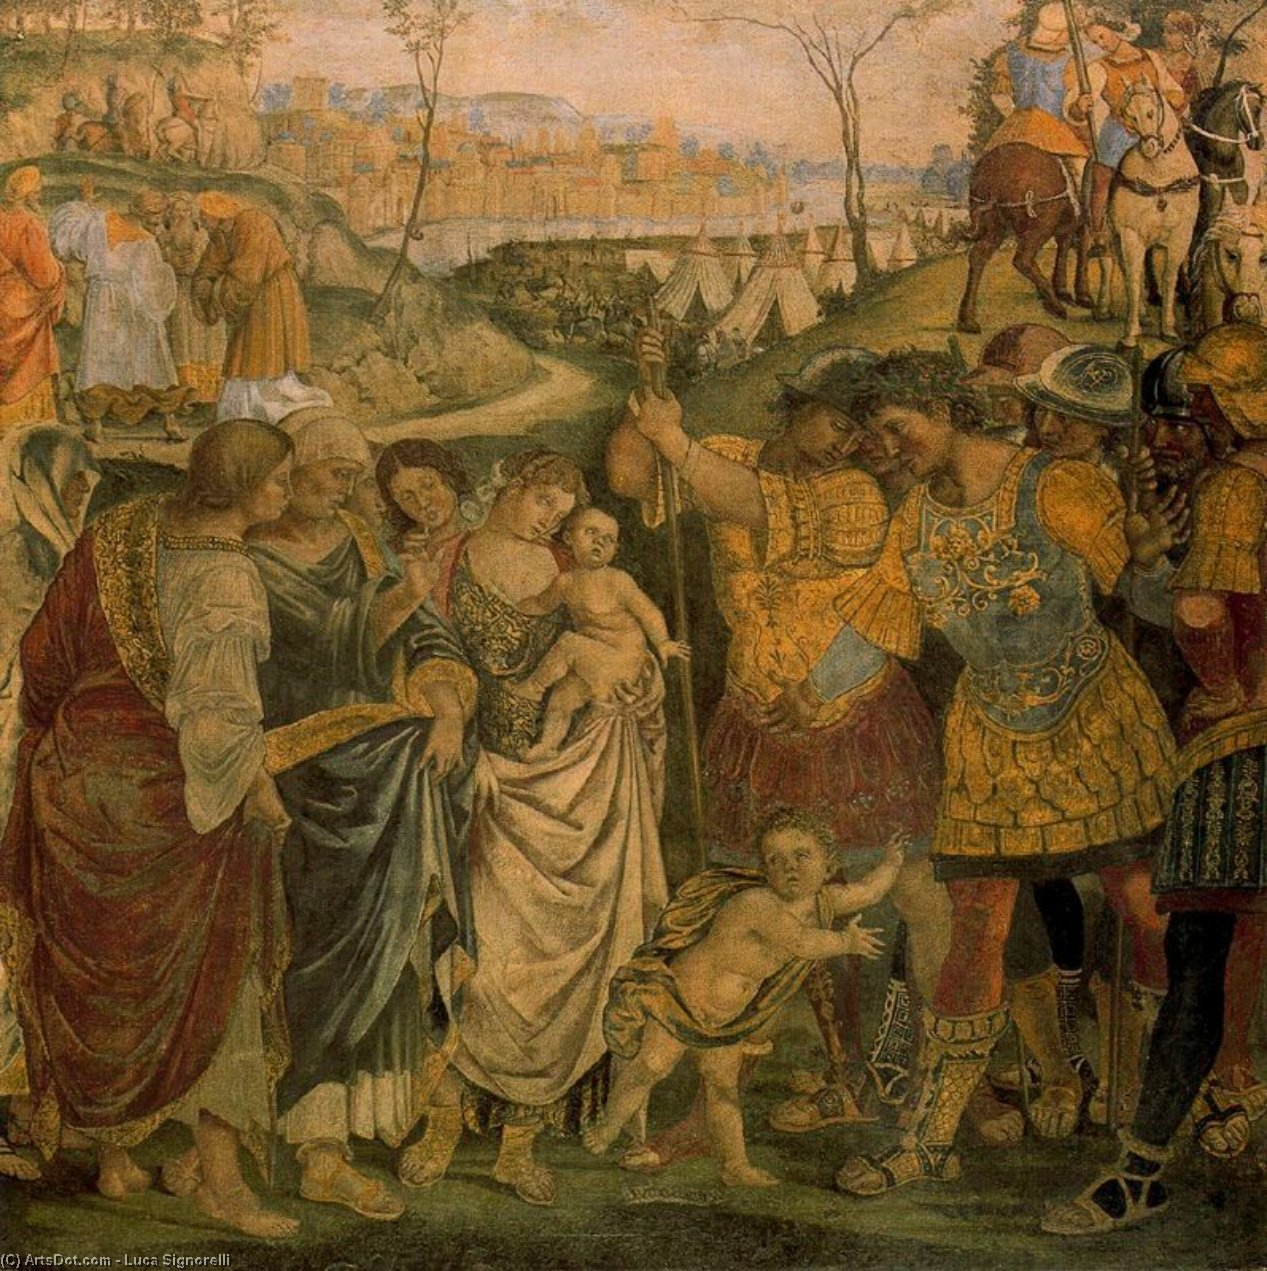 Coriolanus persuaded by his Family to spare Rome, 1509 by Luca Signorelli (1445-1523, Italy)